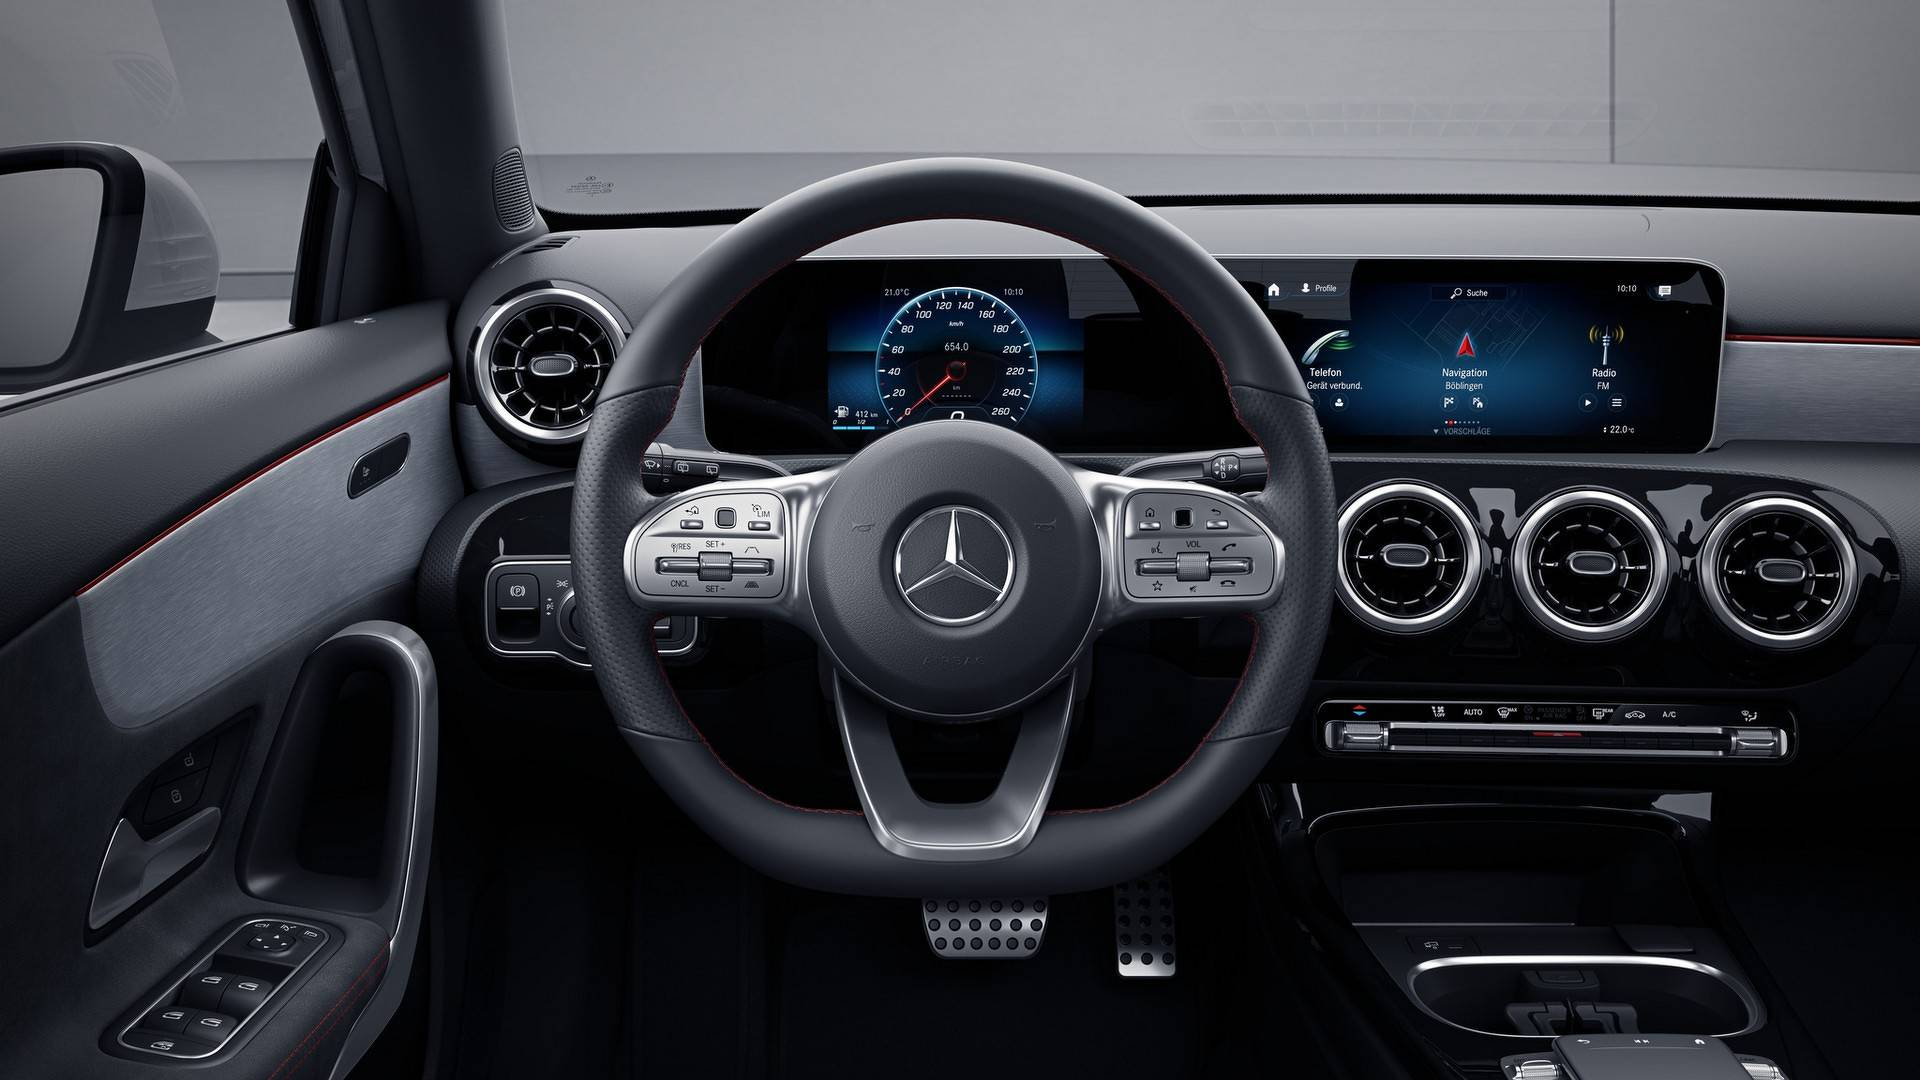 Mercedes Explains Why 2019 C-Class Doesn't Have MBUX